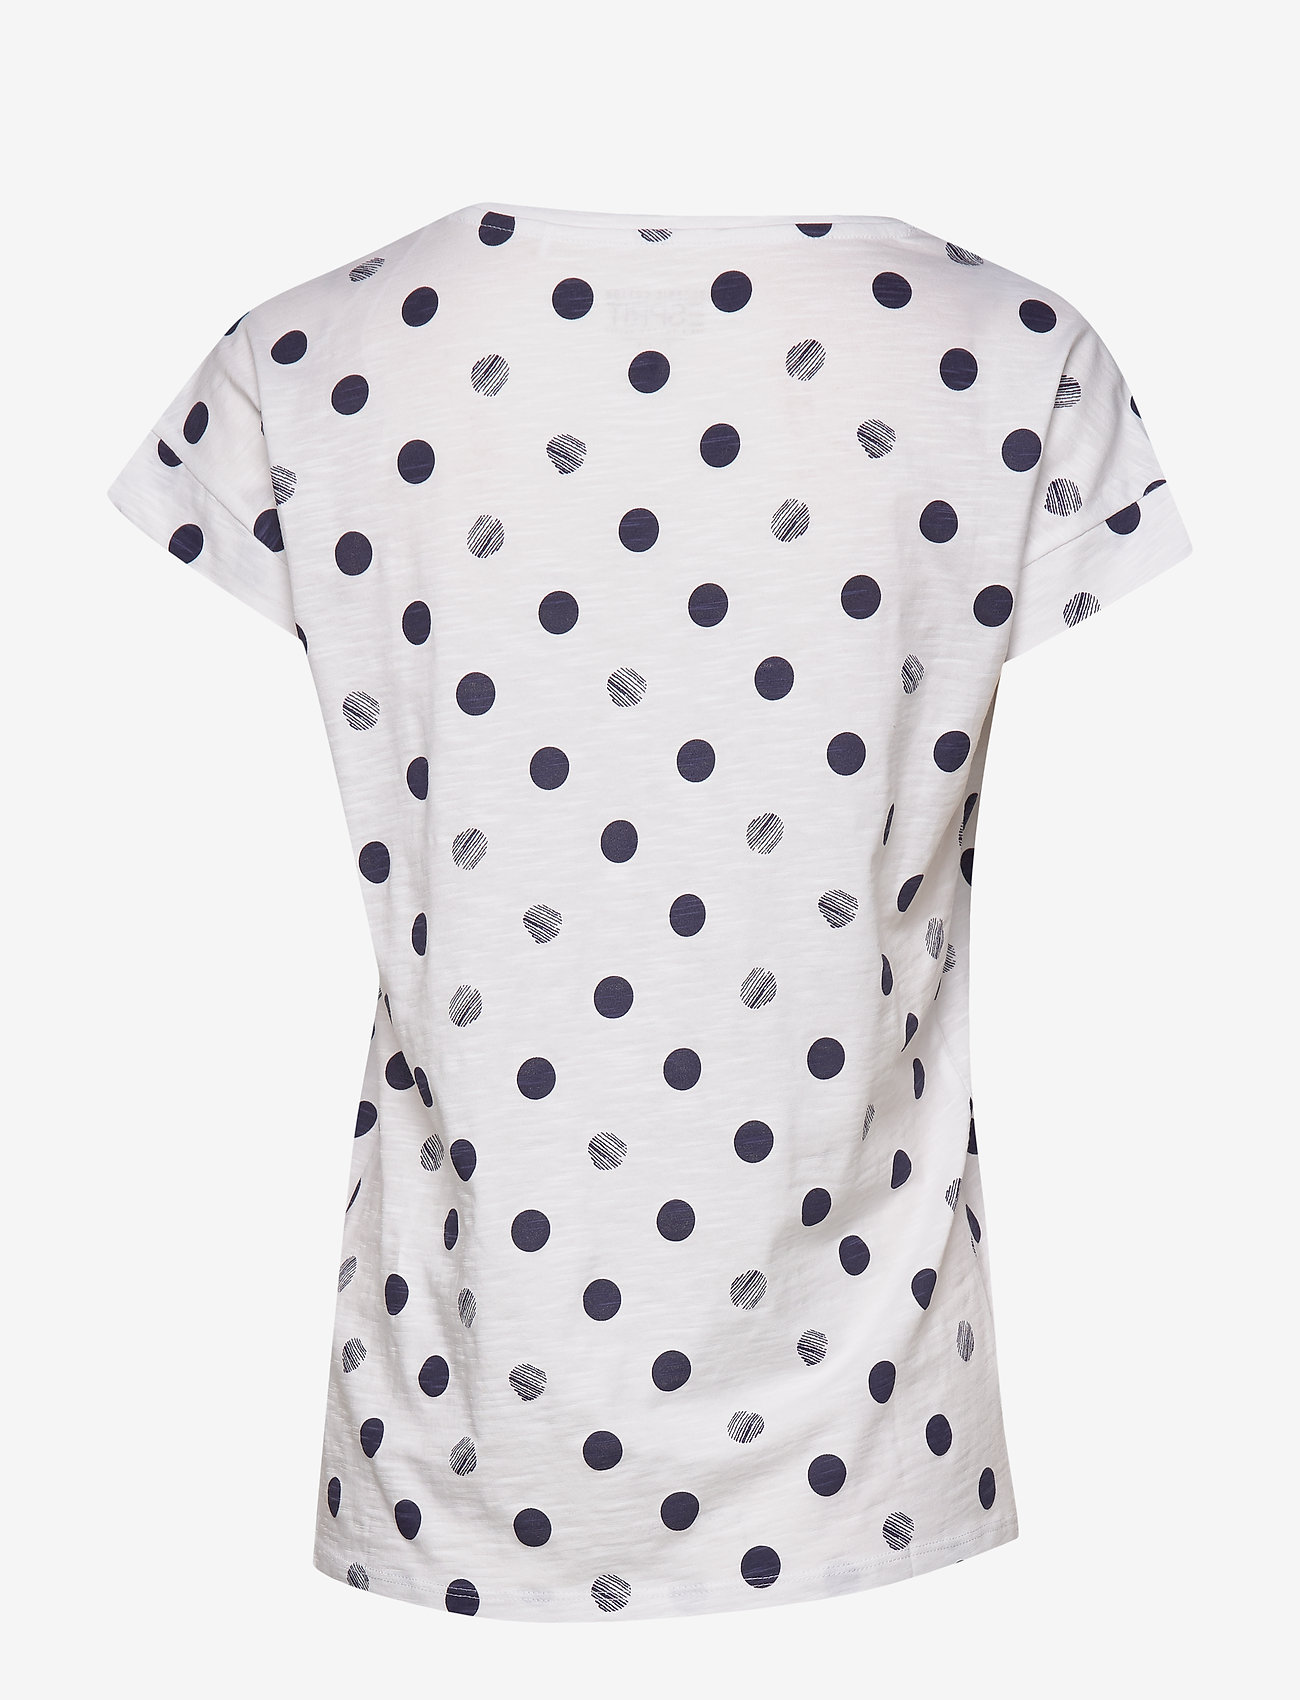 Esprit Casual - T-Shirts - t-shirts - white - 1